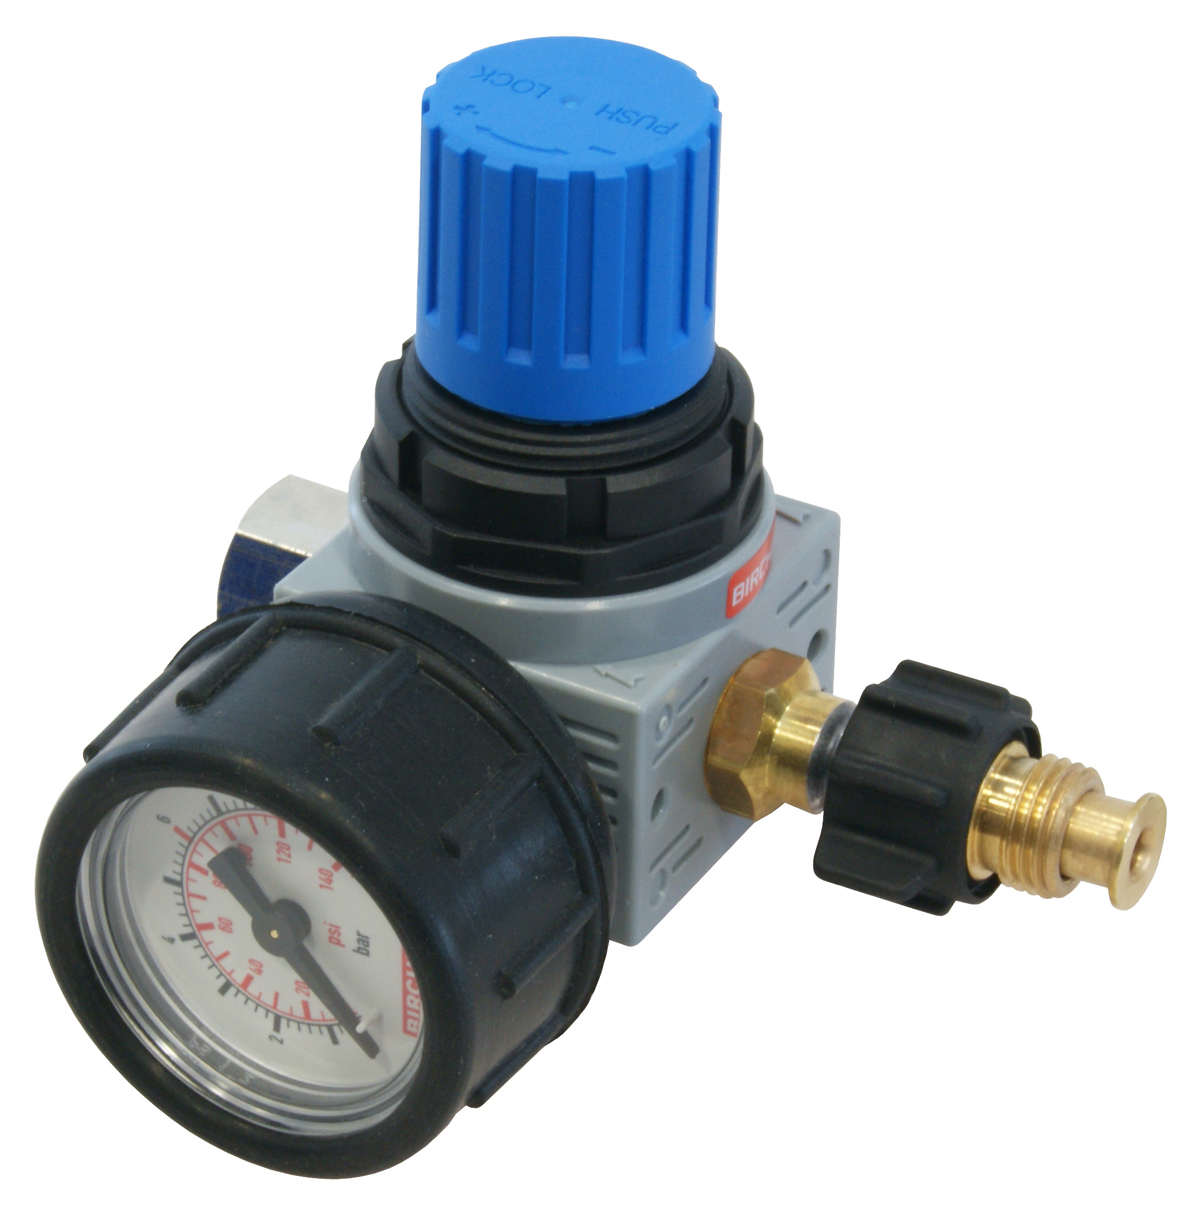 Pressure regulator with pressure gauge